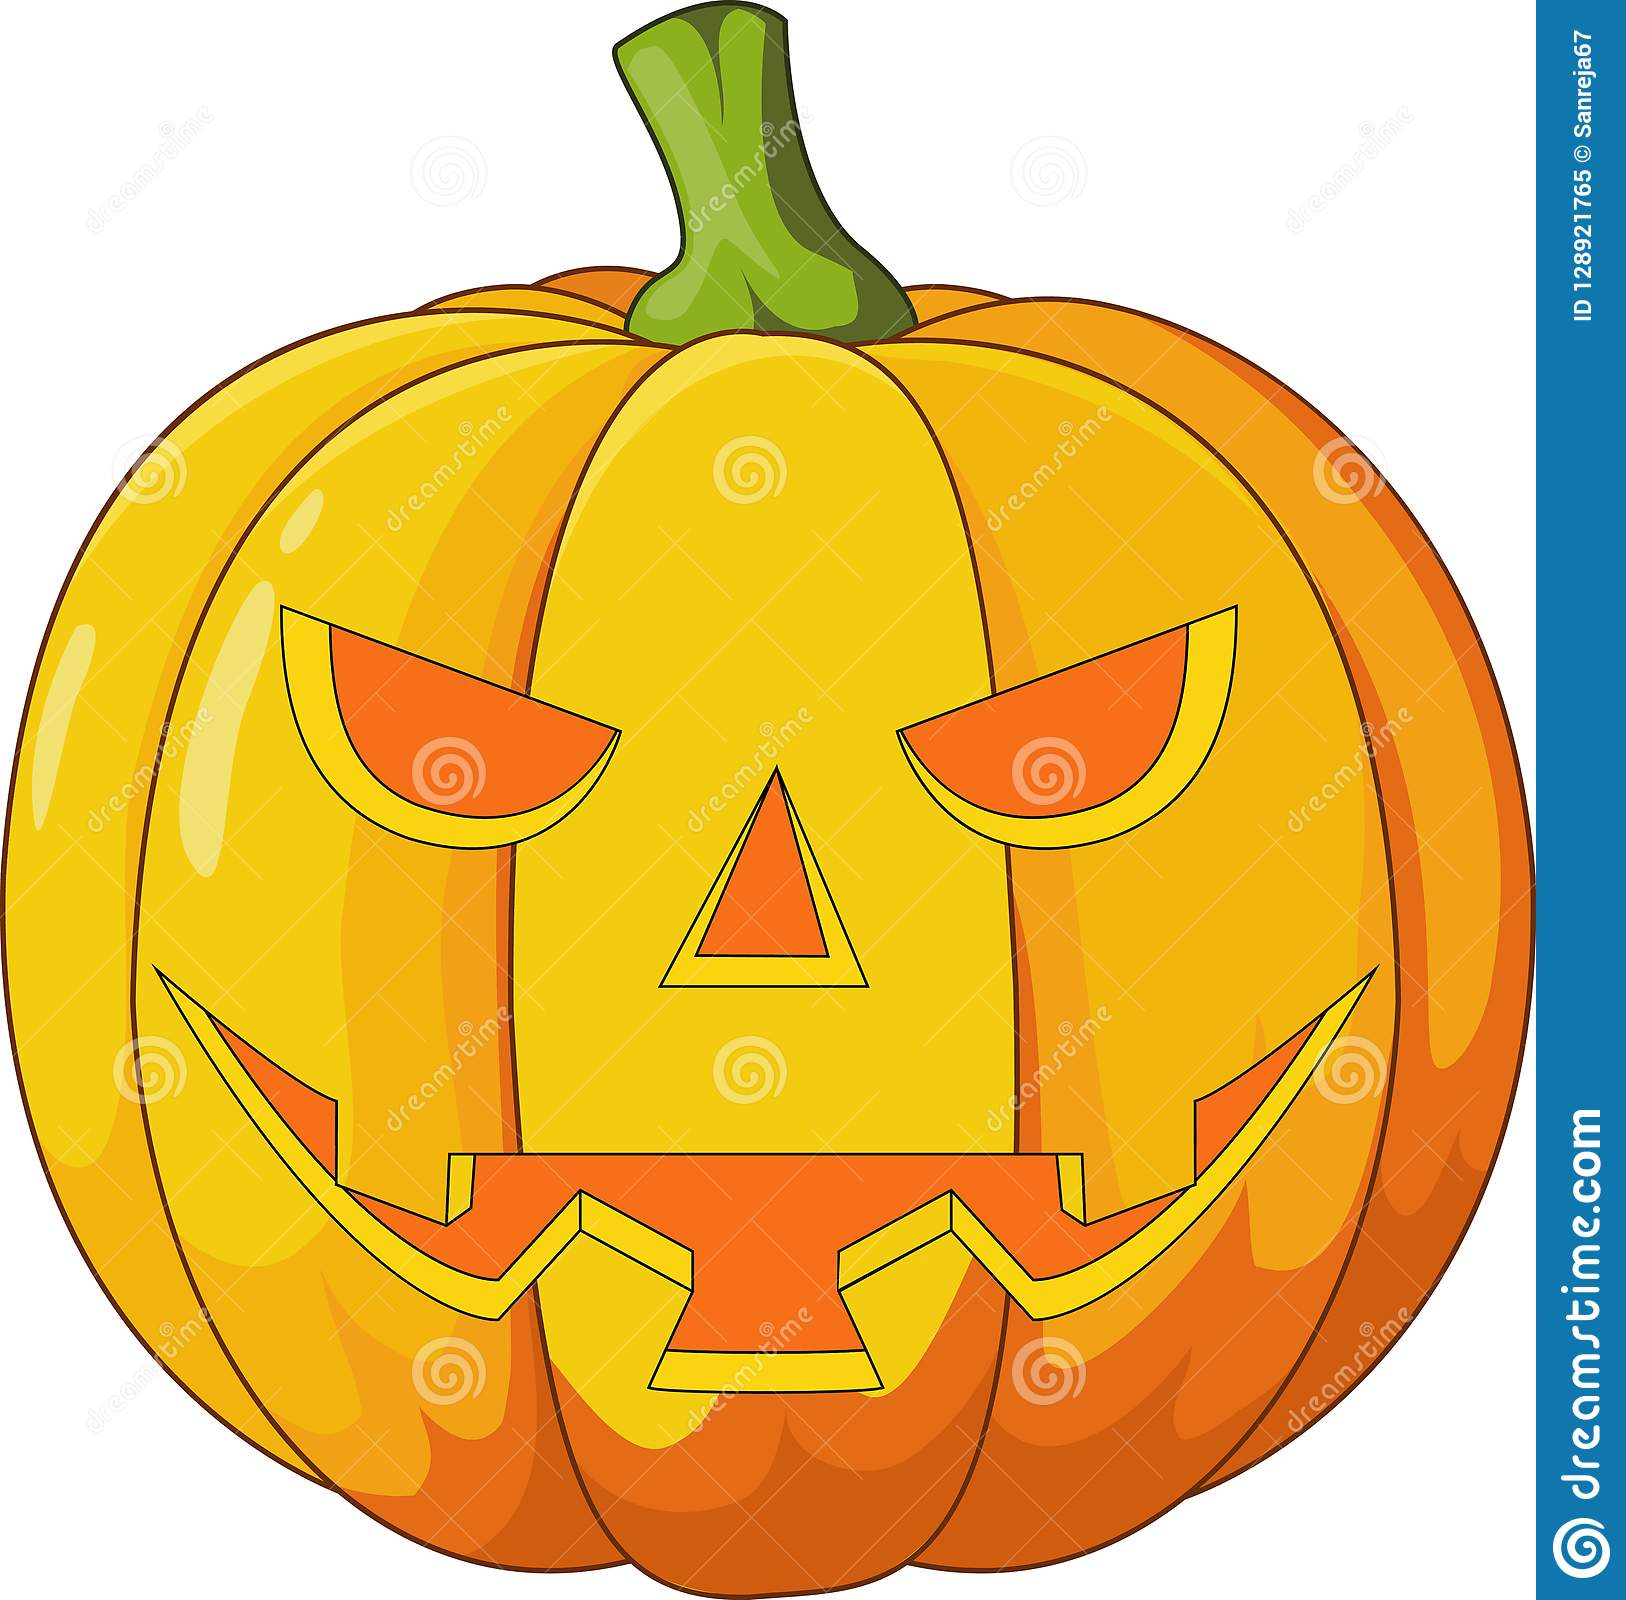 Illustration about illustration of scary halloween pumpkin cartoon. Scary Halloween Pumpkin Cartoon Stock Vector Illustration Of Dark Happy 128921765